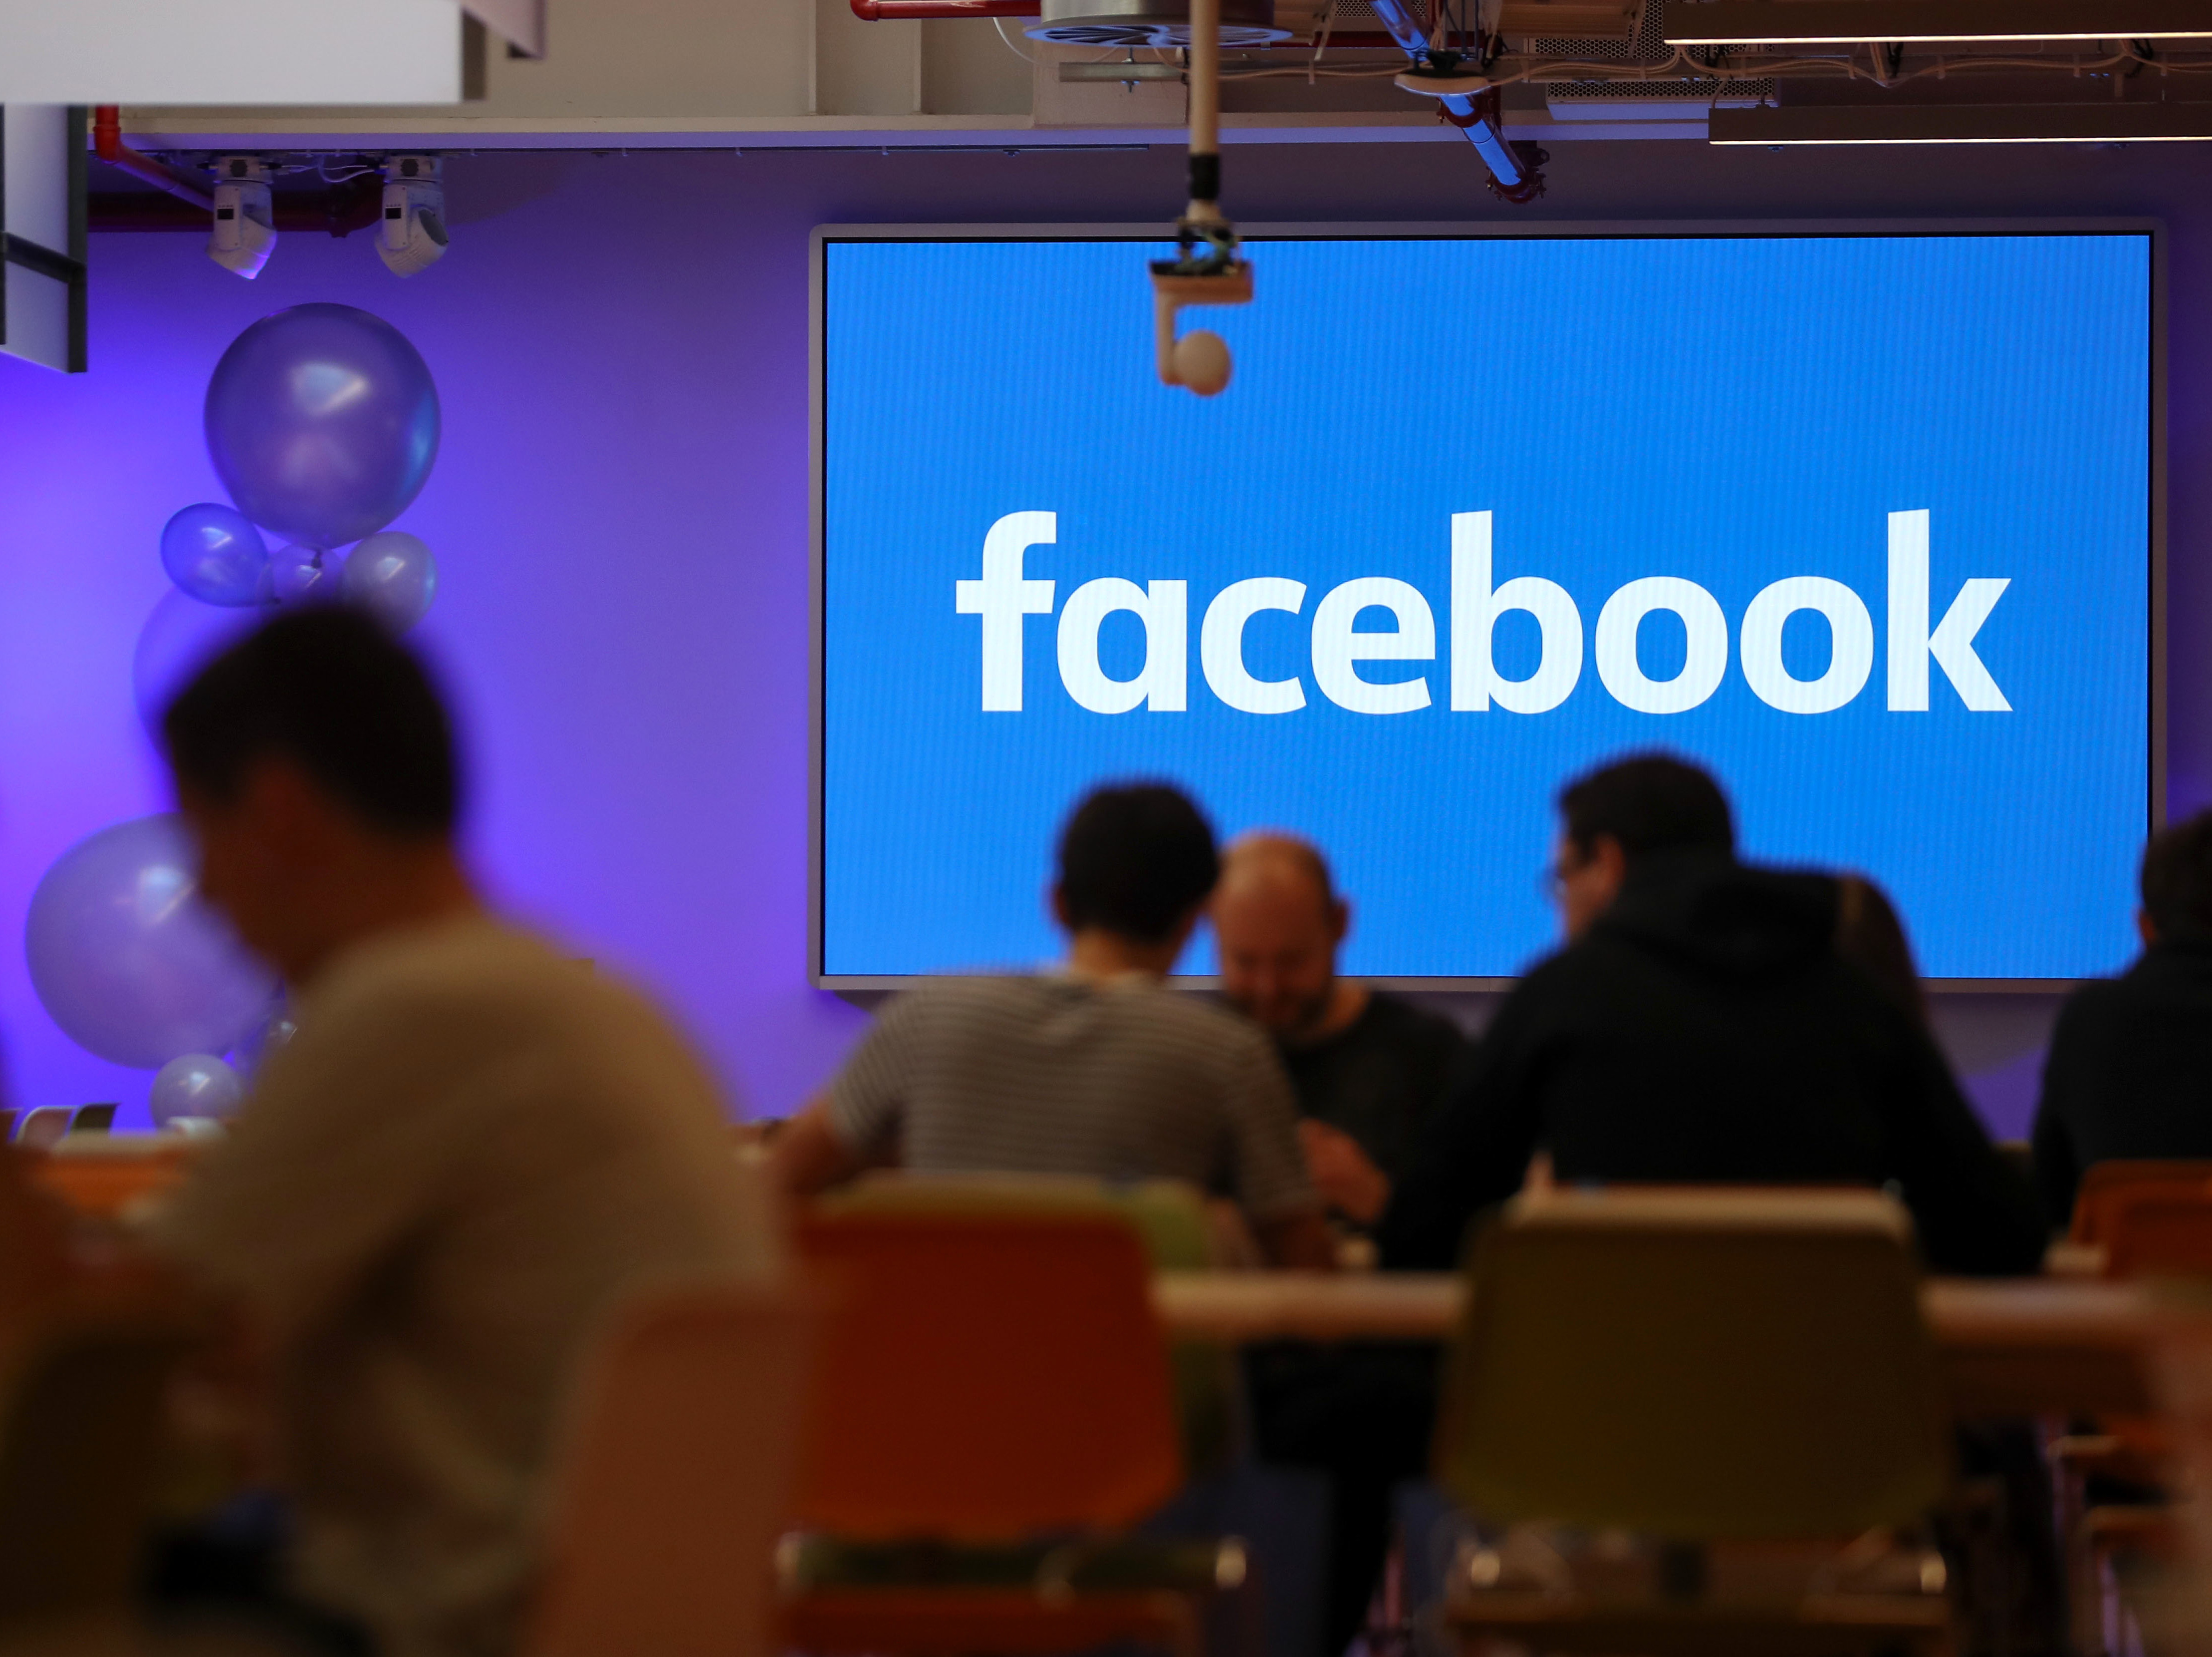 Facebook Faces Steam as USA and UK Urge Probes of Data Practices